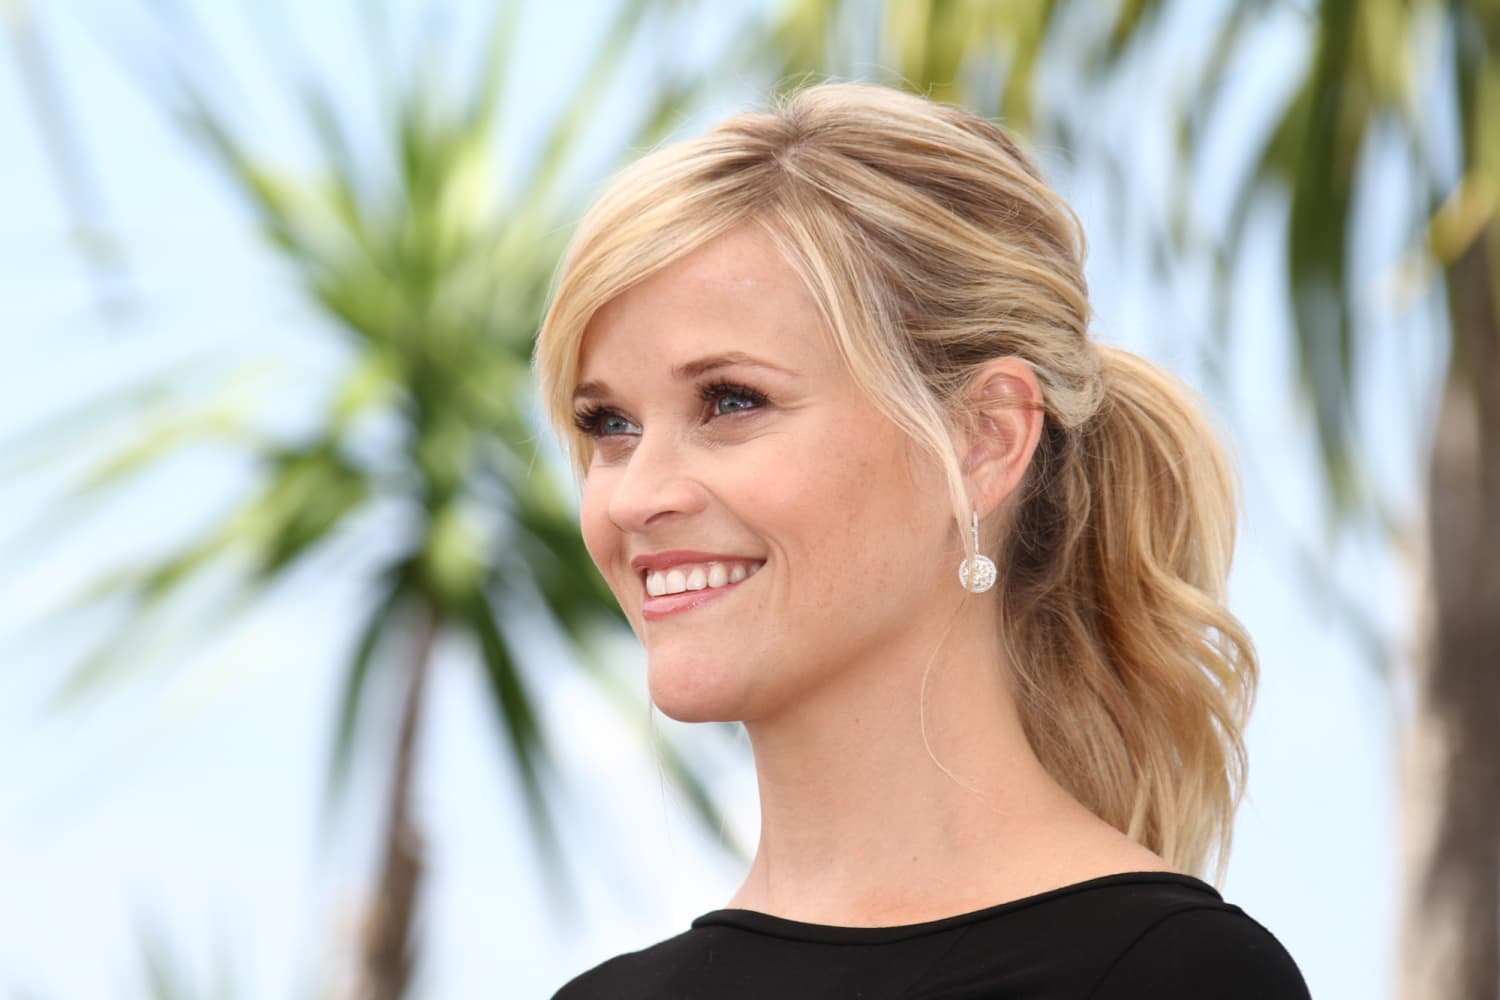 Watch Reese Witherspoon Surprise People with New Furniture